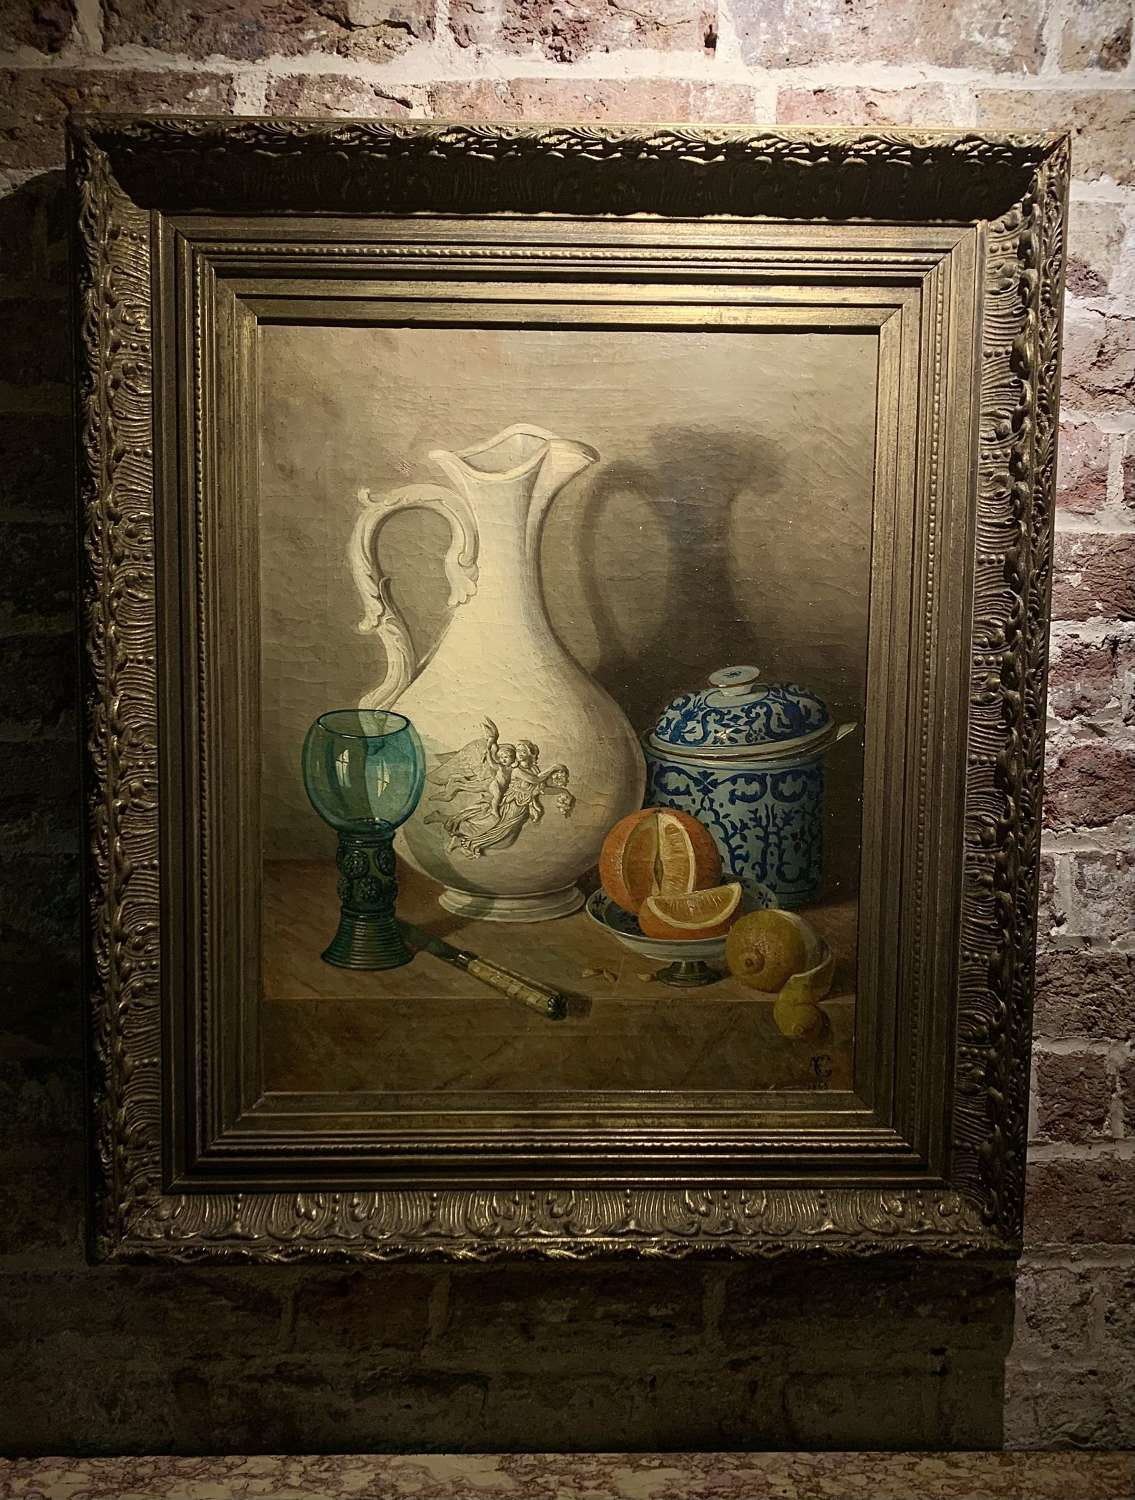 19th century framed oil painting - Still Life with ceramics and glass